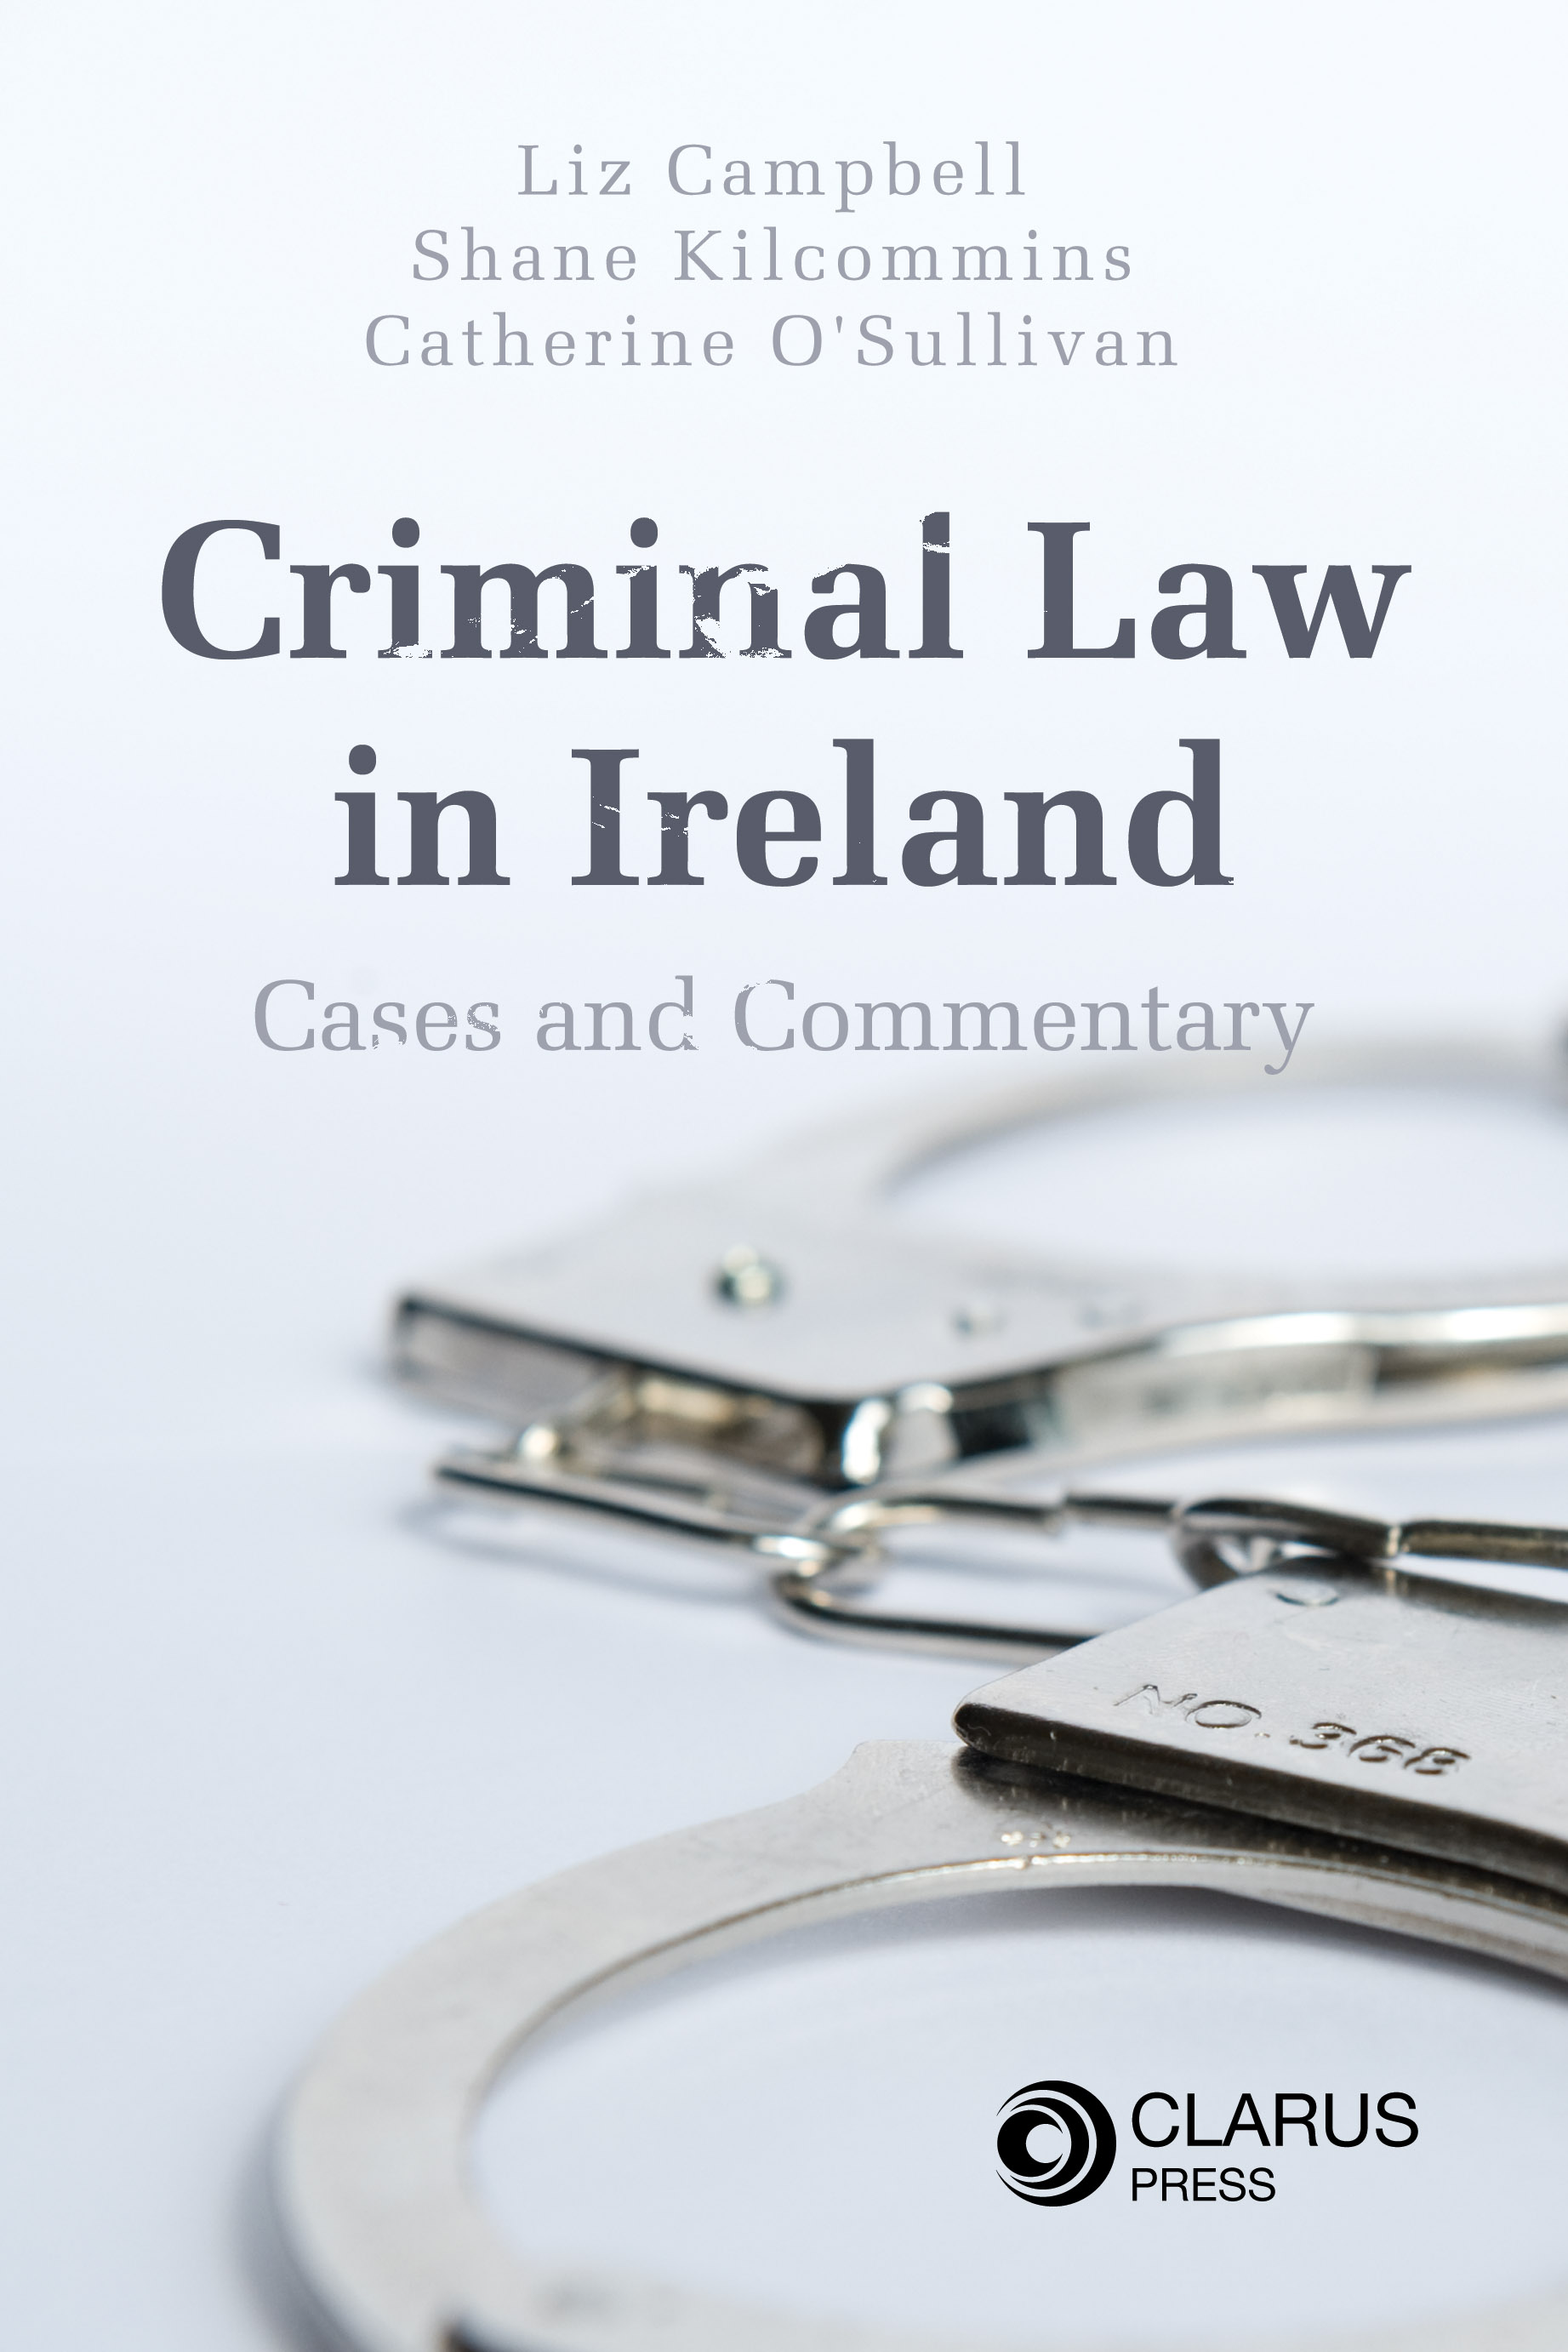 criminal laws materials and commentary pdf